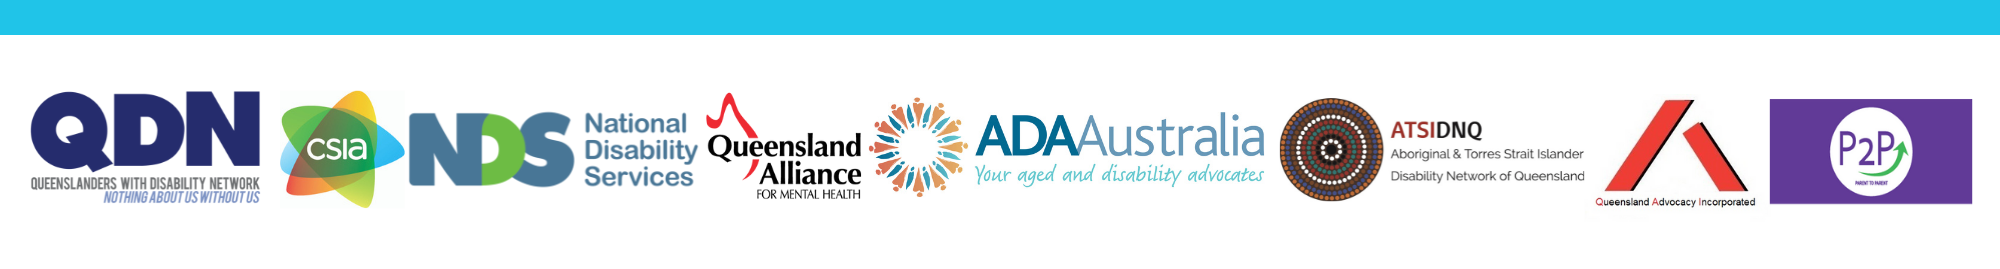 8 logos - QDN Queenslanders with Disability Network - Nothing about us without us, ADA Australia - Your aged and disability advocates, ATSIDNQ Aboriginal and Torres Strait Islander Disability Network of Queensland, Community Services Industry Alliance, NDS National Disability Services, Queensland Alliance for Mental Health, Queensland Advocacy Incorporated, P2P Parent to Parent